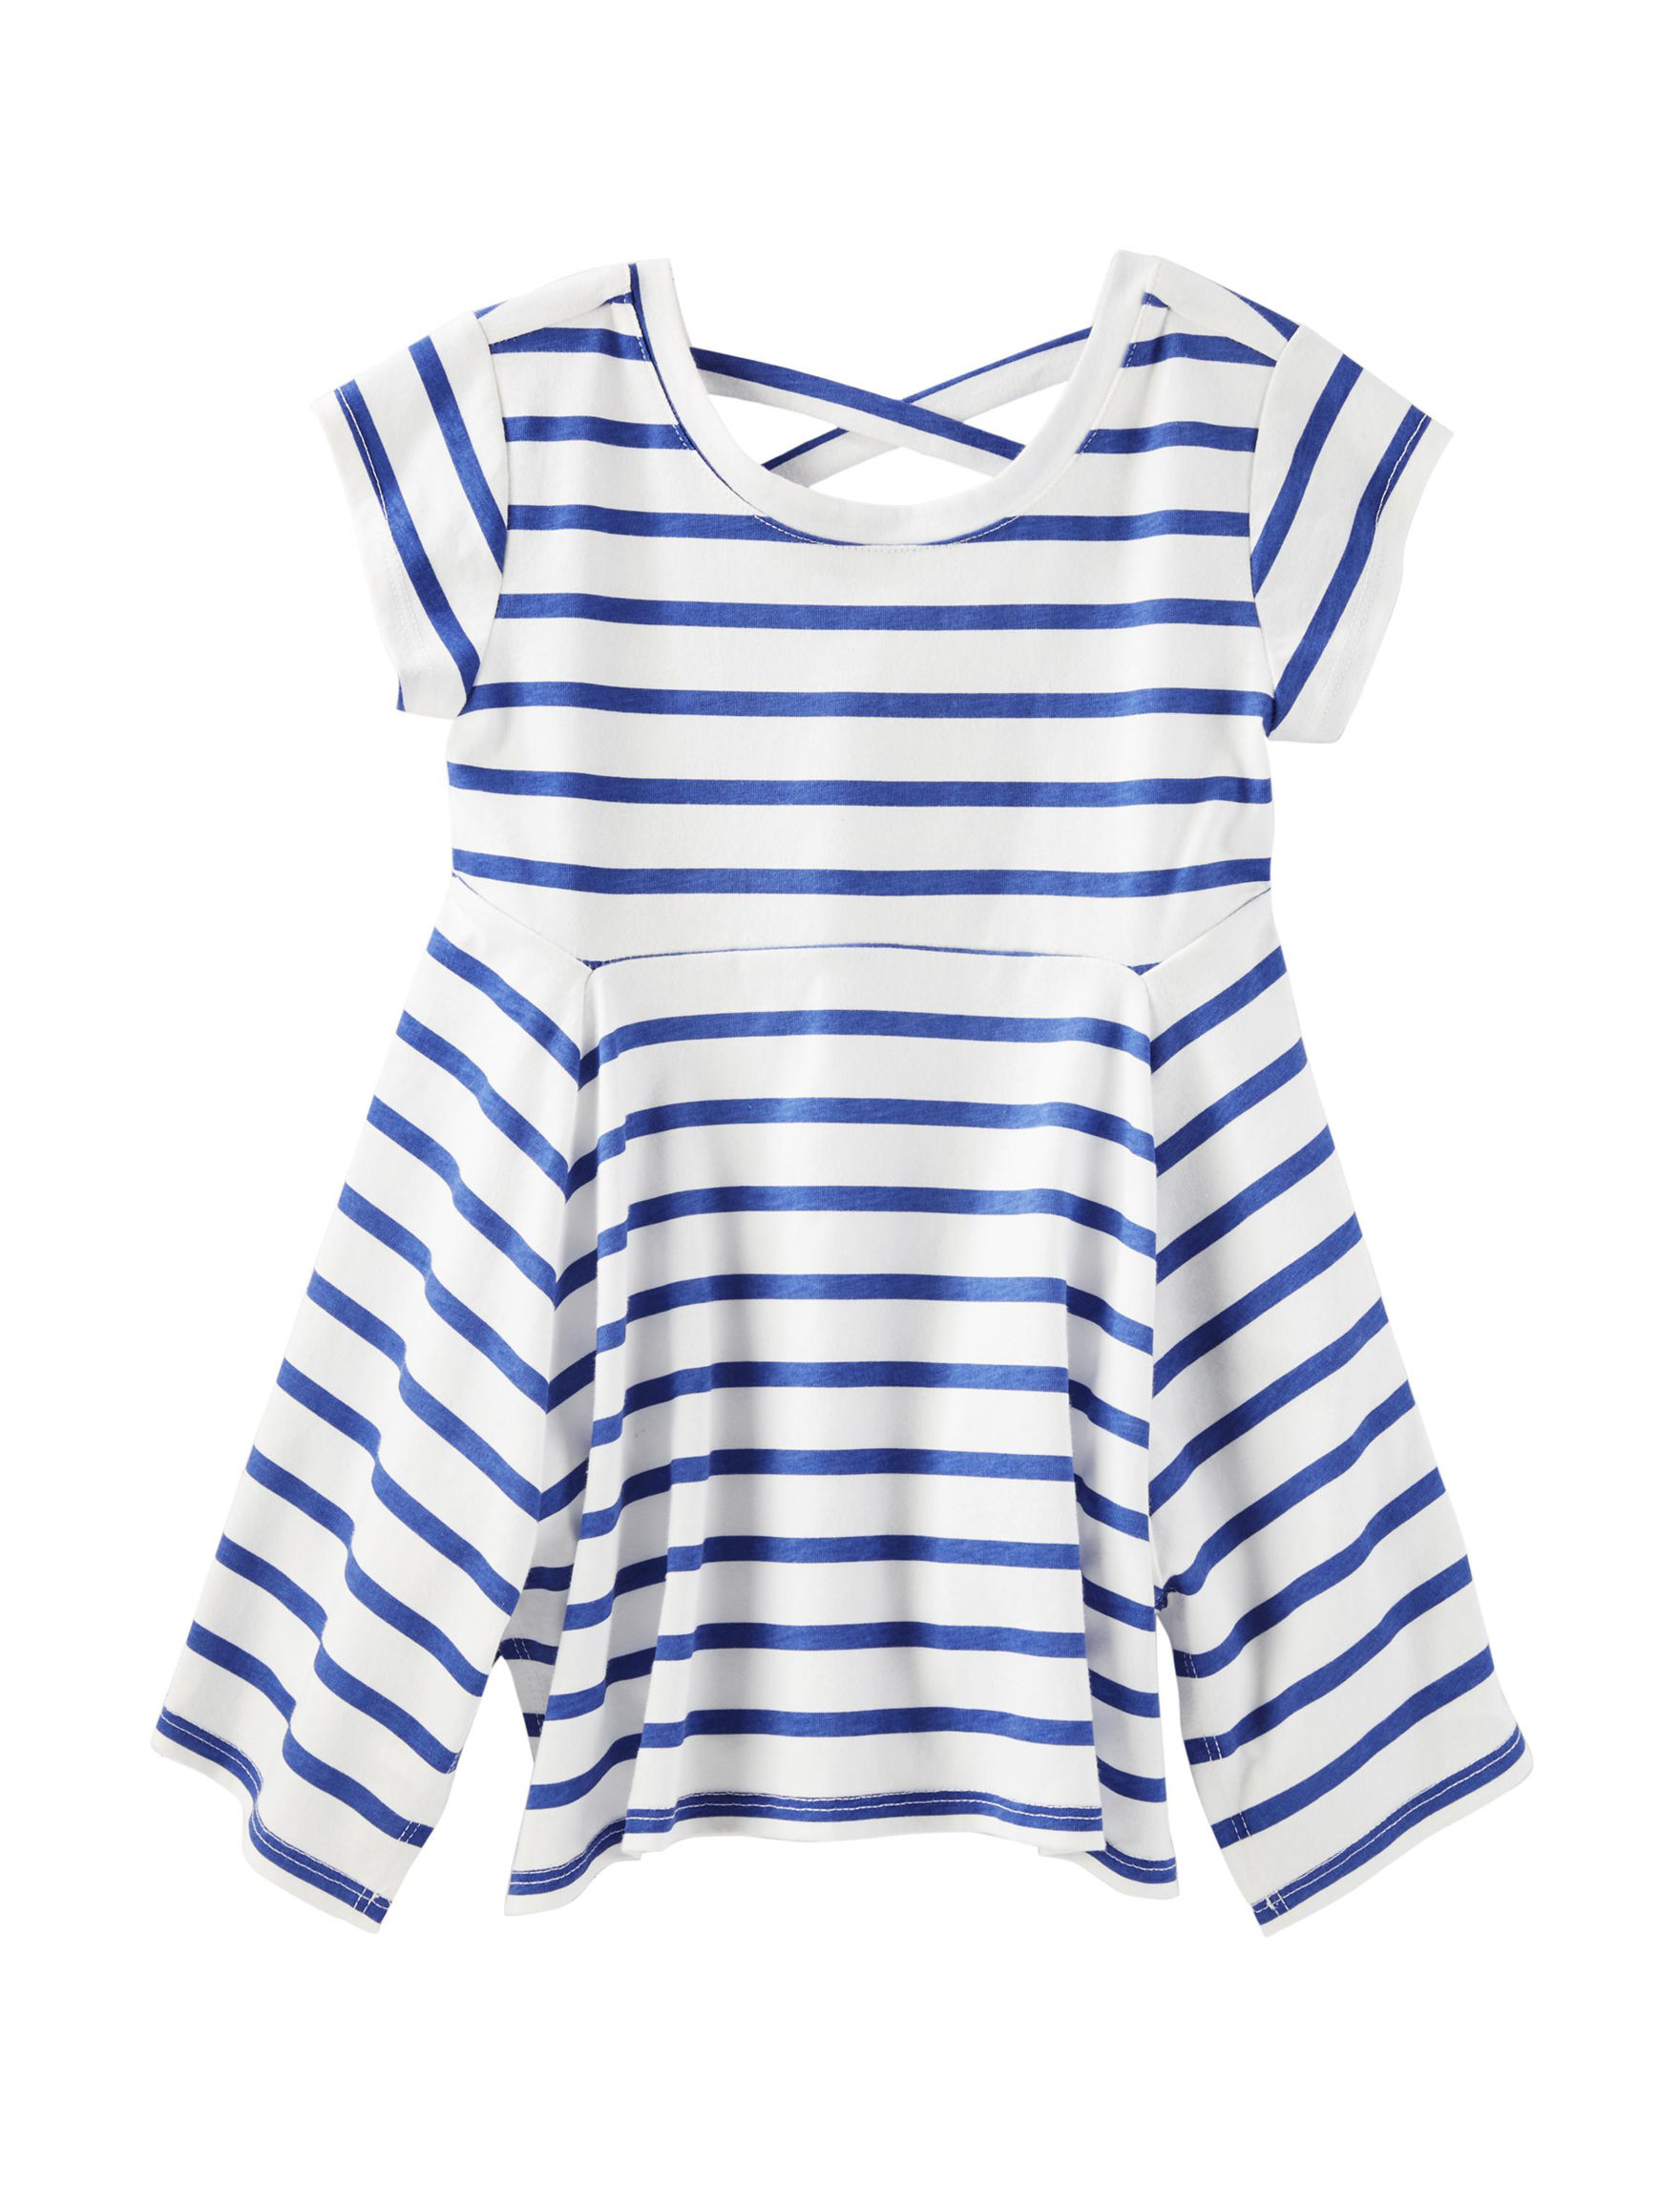 Oshkosh B'Gosh Navy Stripe